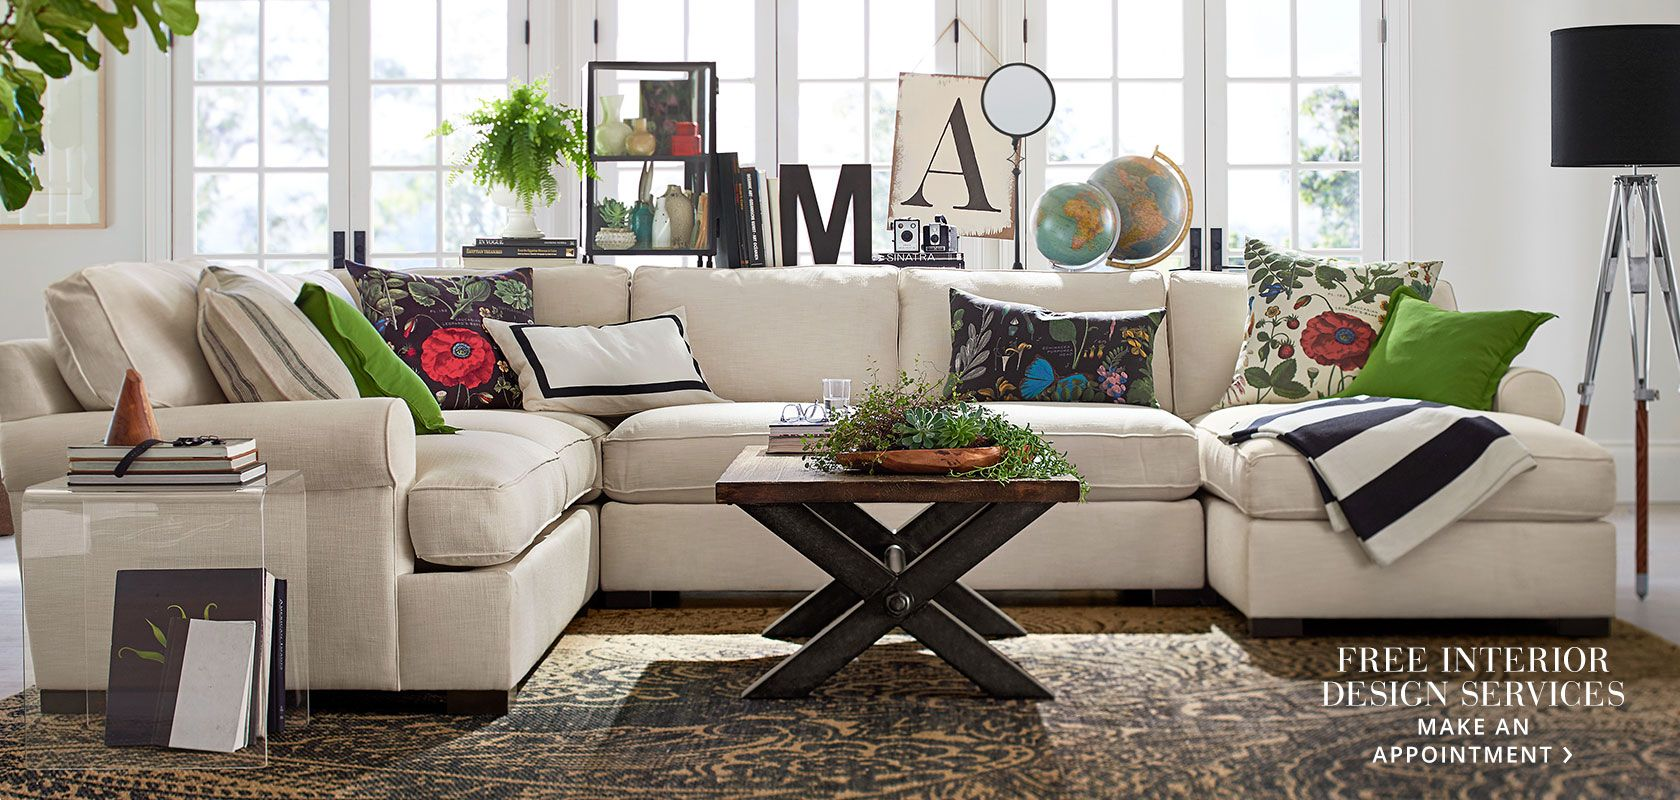 Design Services Available Free With Pottery Barn A